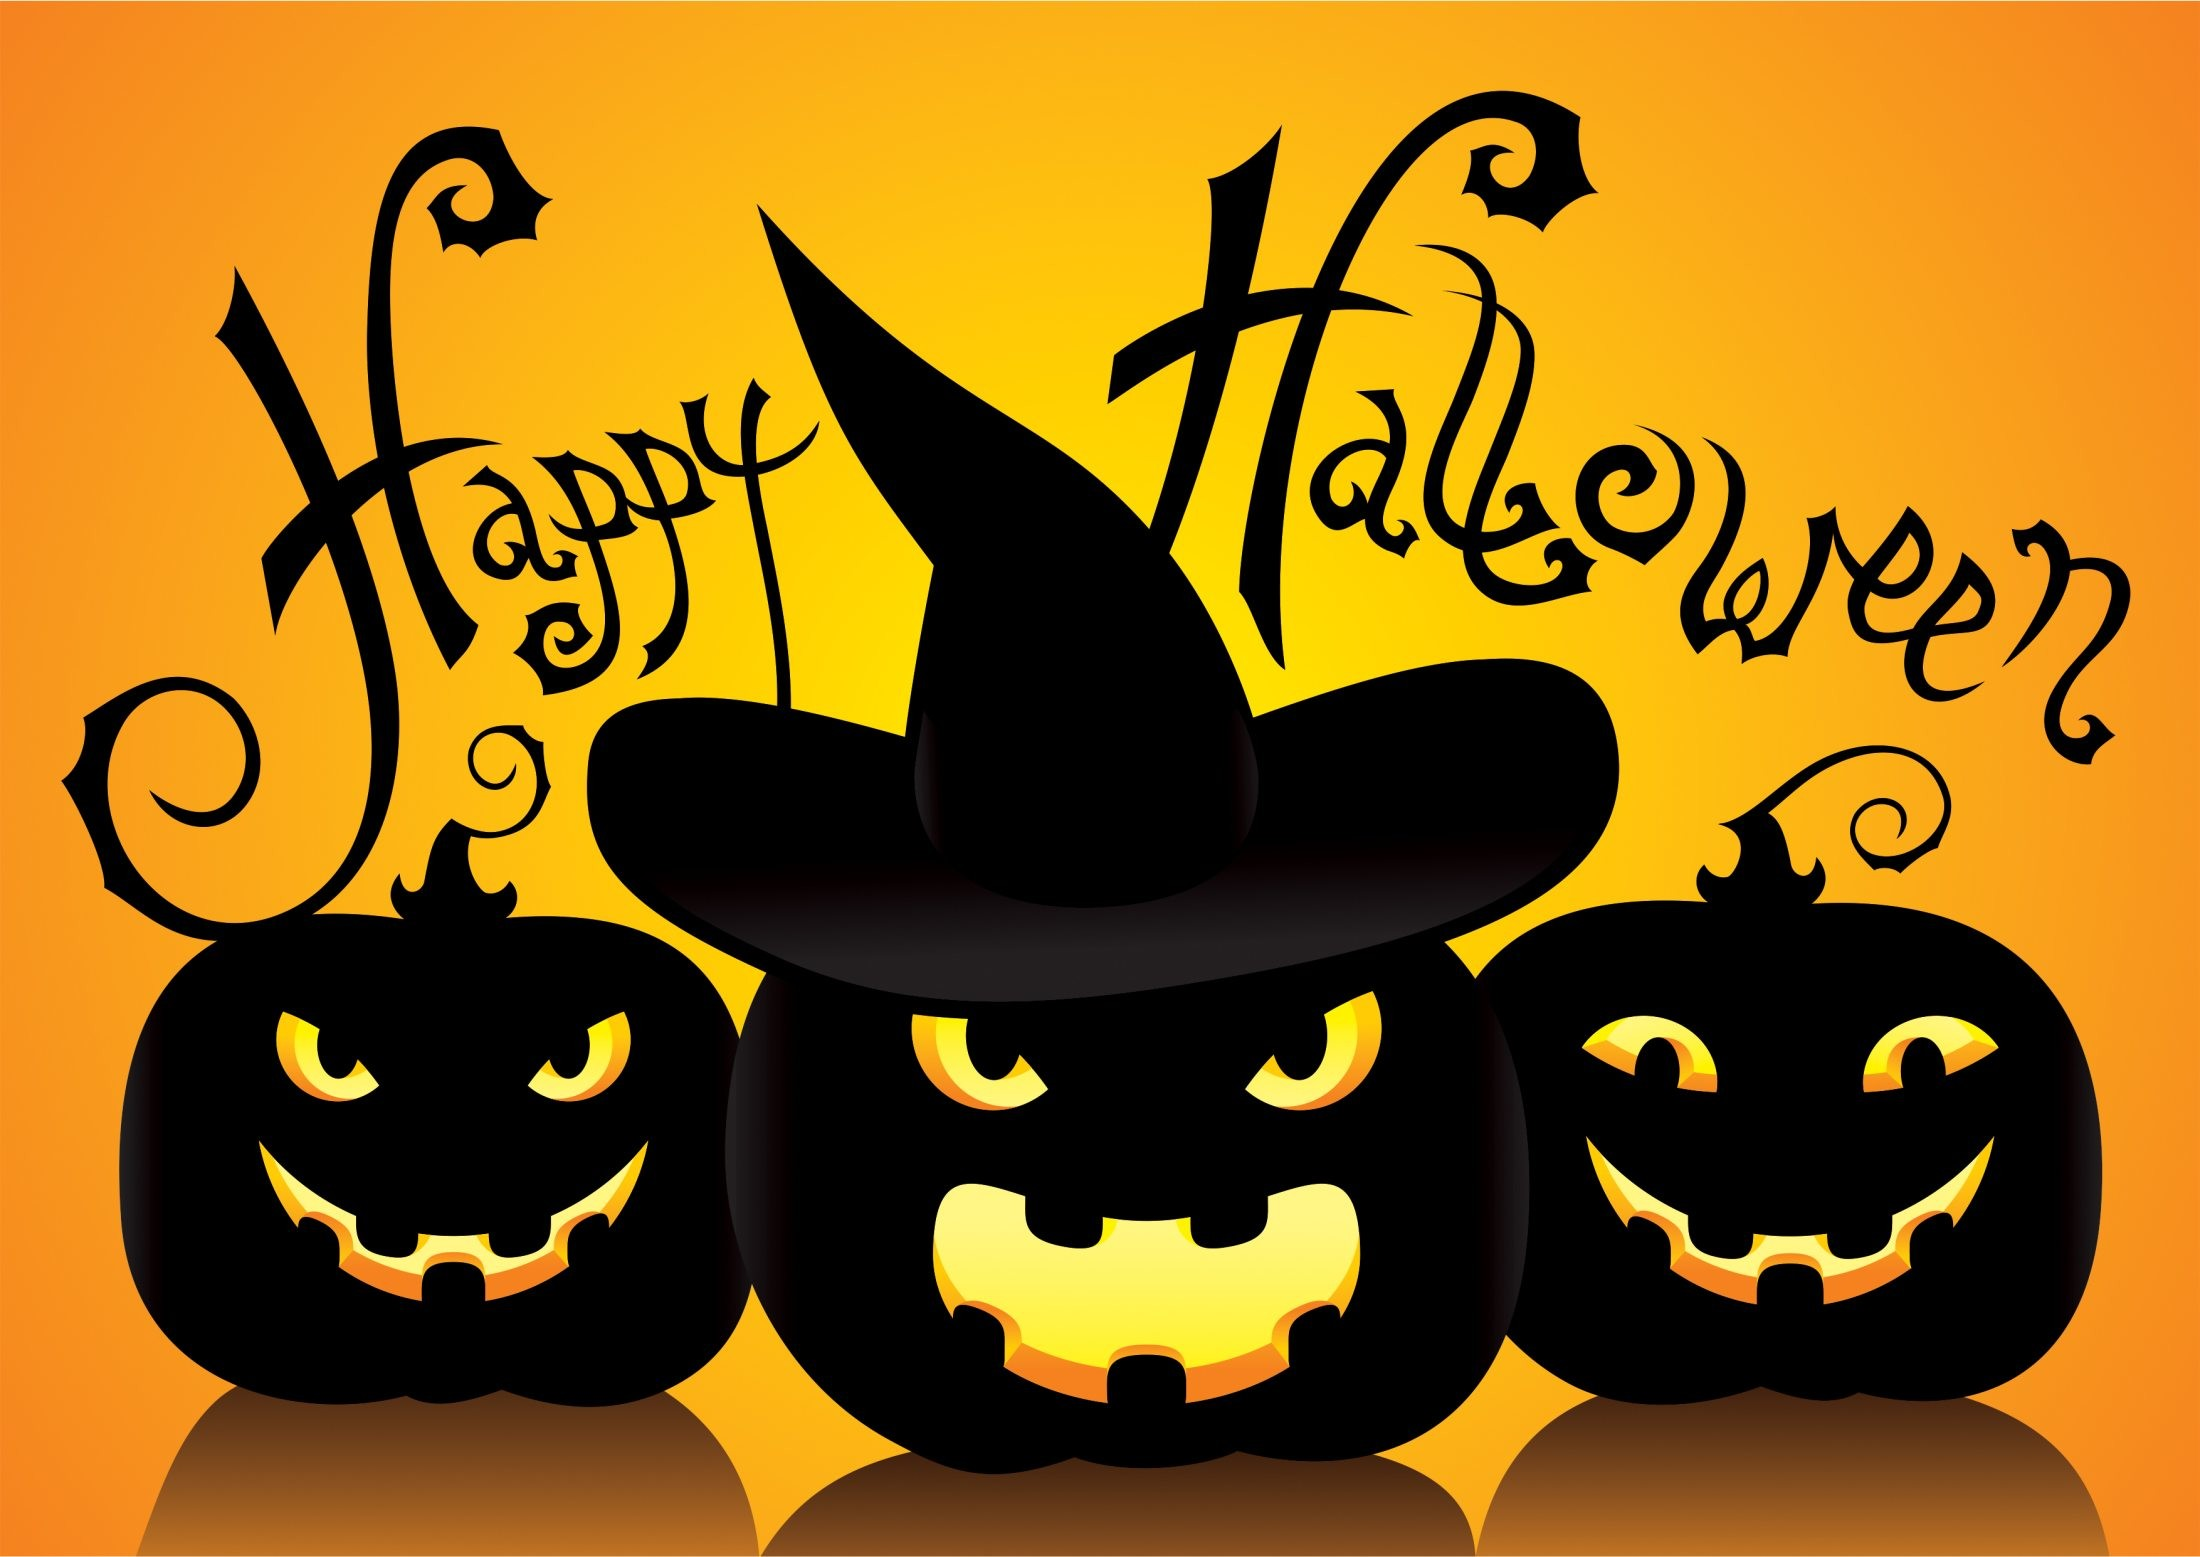 2200x1557 Cute Halloween Wallpaper Images For Free Wallpaper